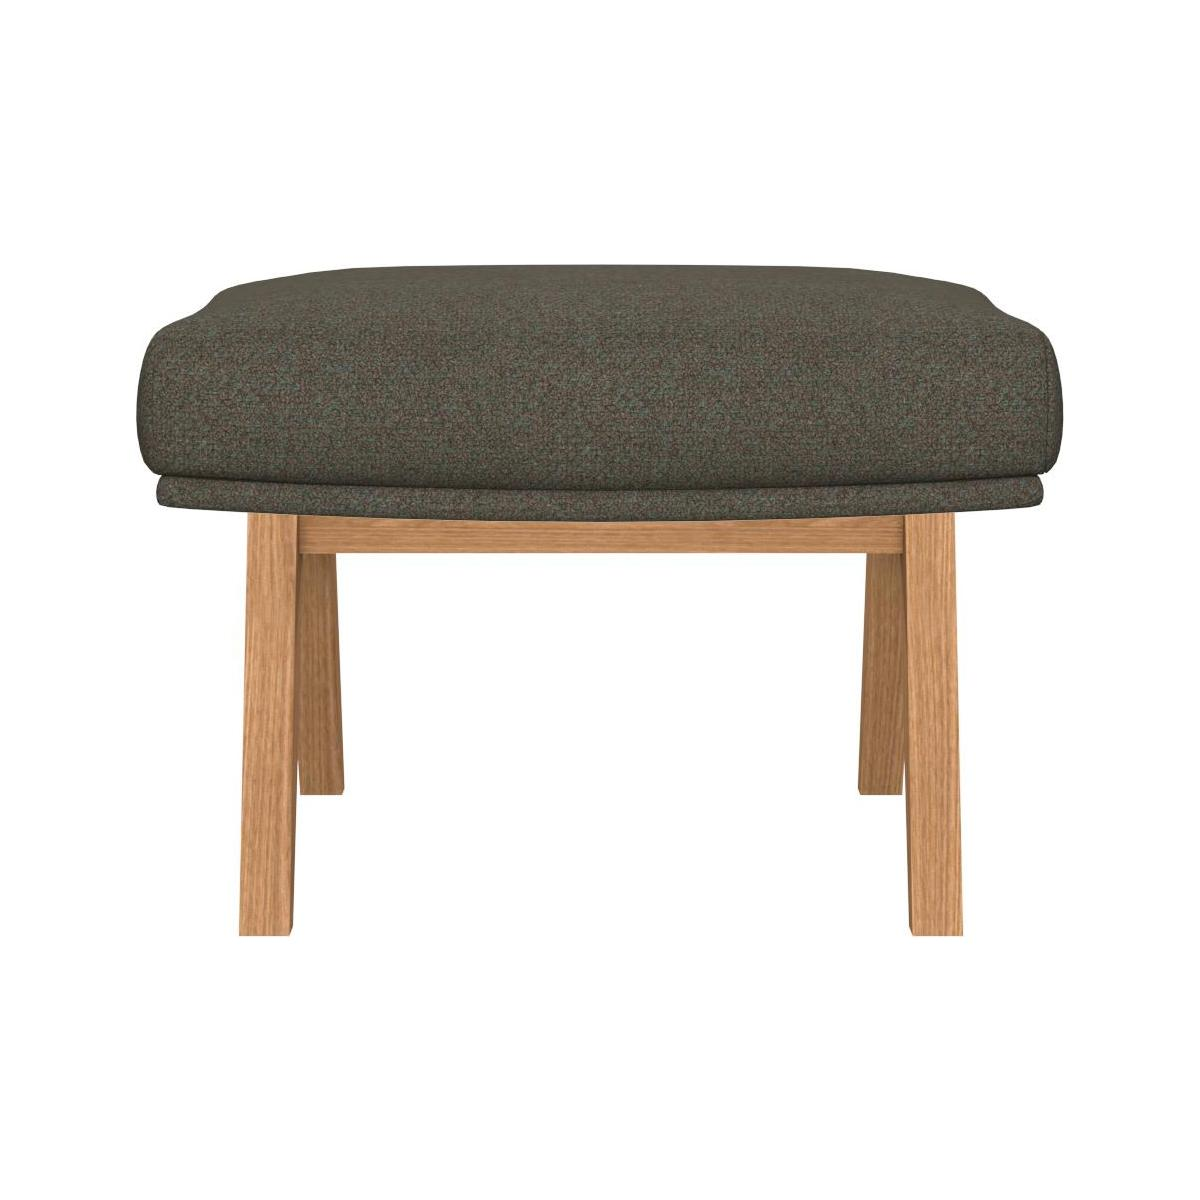 Footstool in Lecce fabric, slade grey with oak legs n°3